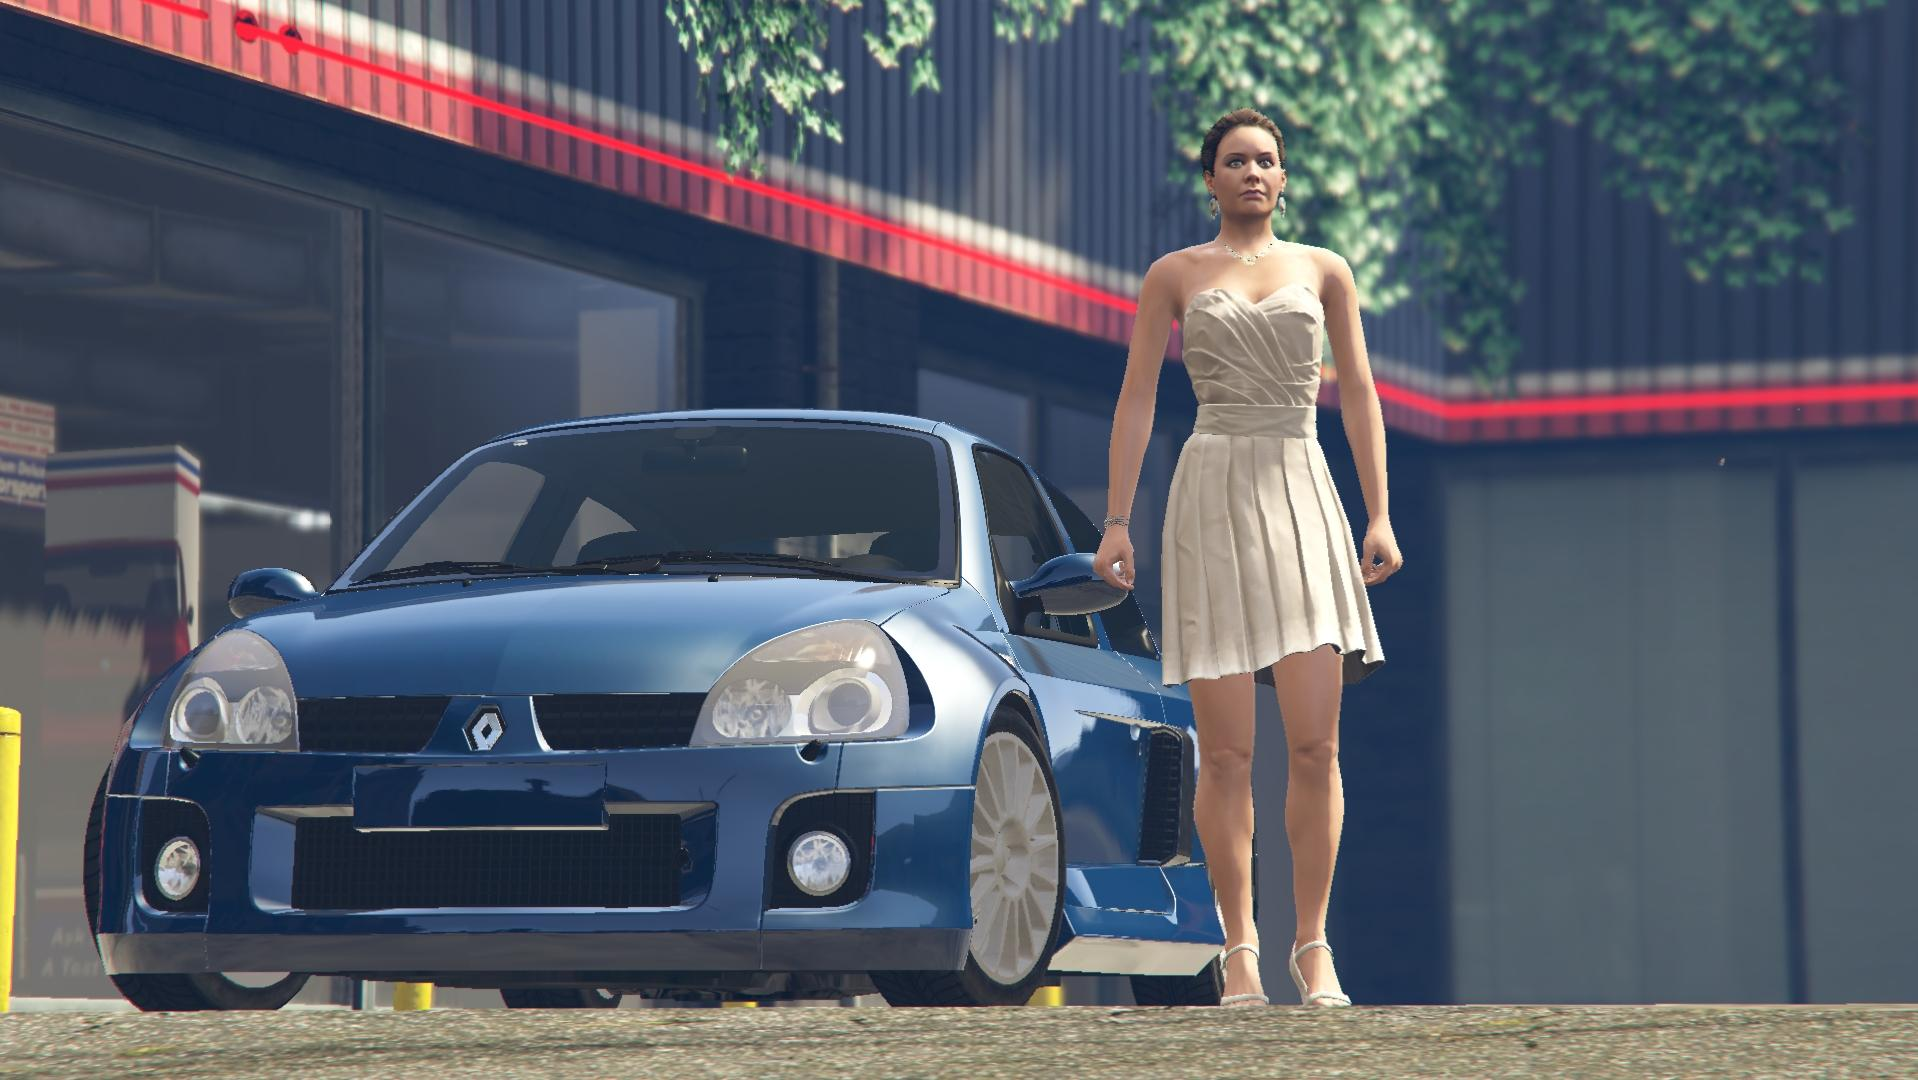 2003 renault clio v6 phase 2 add on tuning gta5. Black Bedroom Furniture Sets. Home Design Ideas